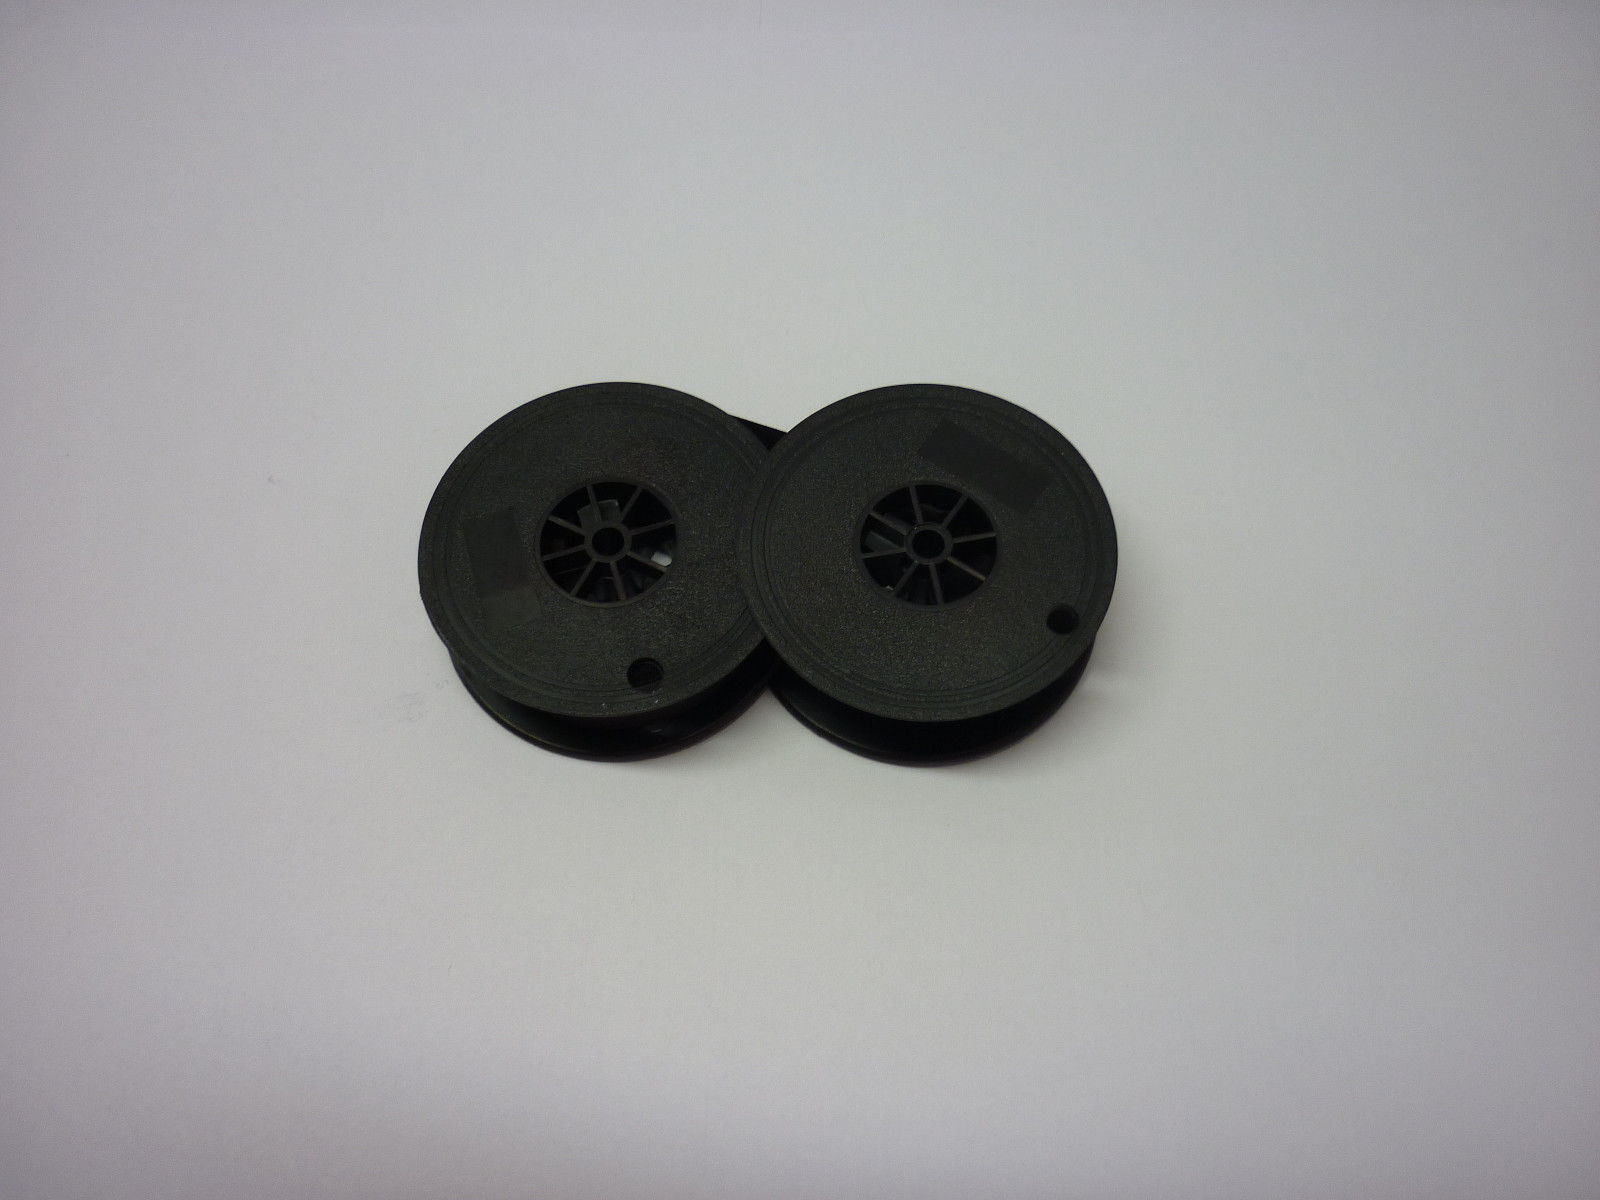 Olivetti Studio 42 Typewriter Ribbon Black Twin Spool